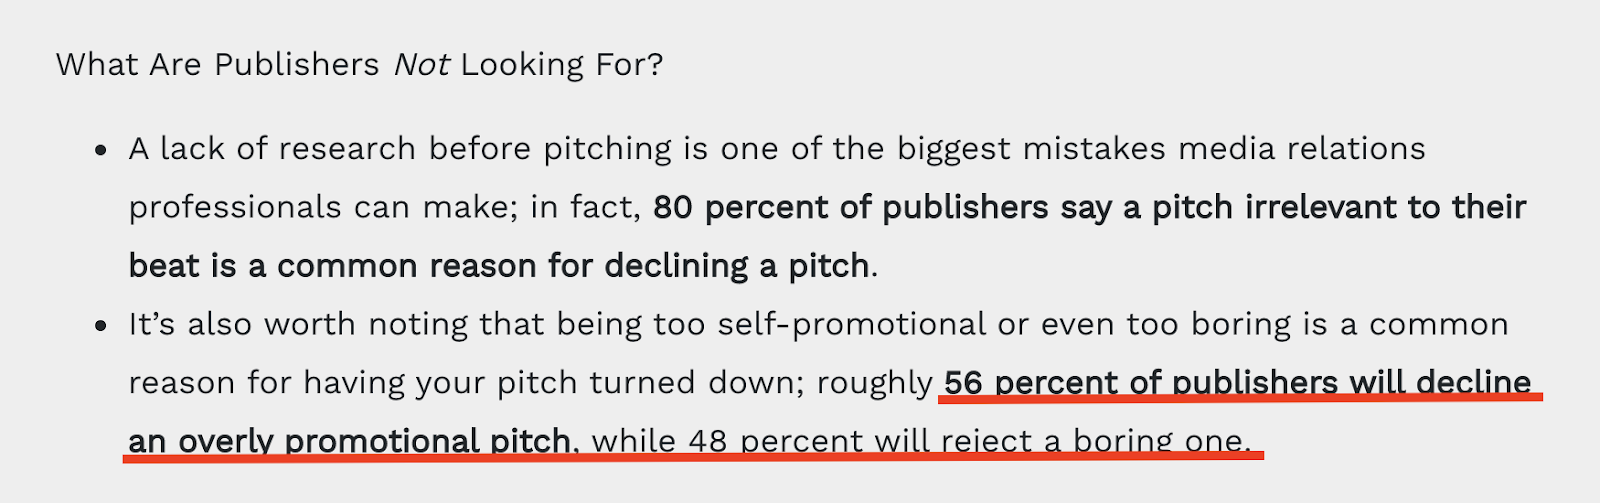 Reason to Decline a Pitch